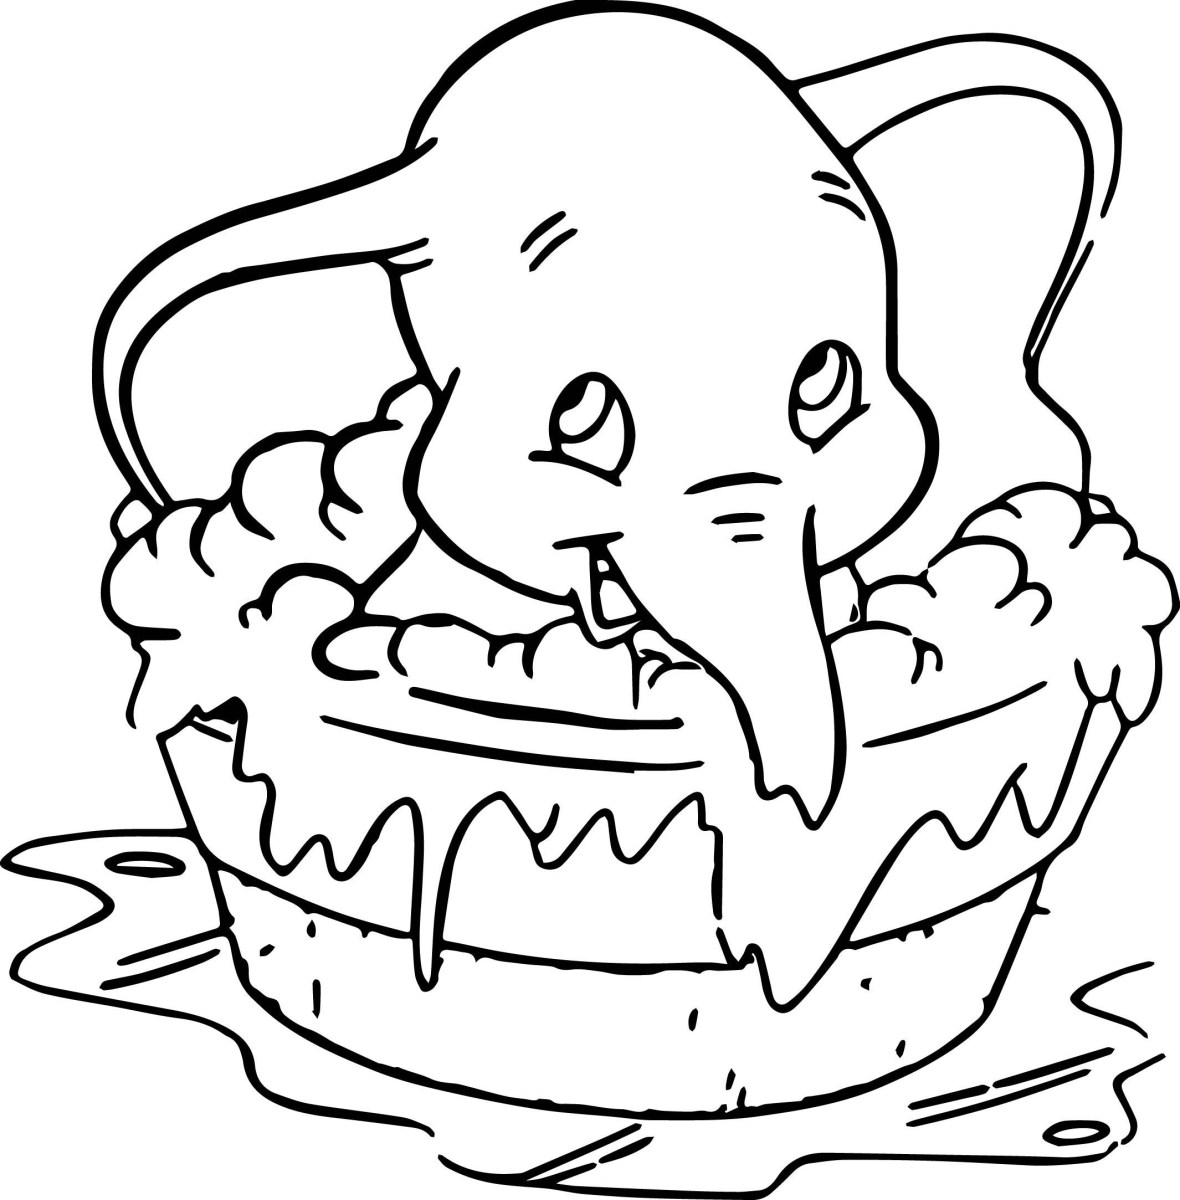 Dumbo Coloring Pages Coloring Page Dumbo Coloring Pages Extraordinary Page Ultra